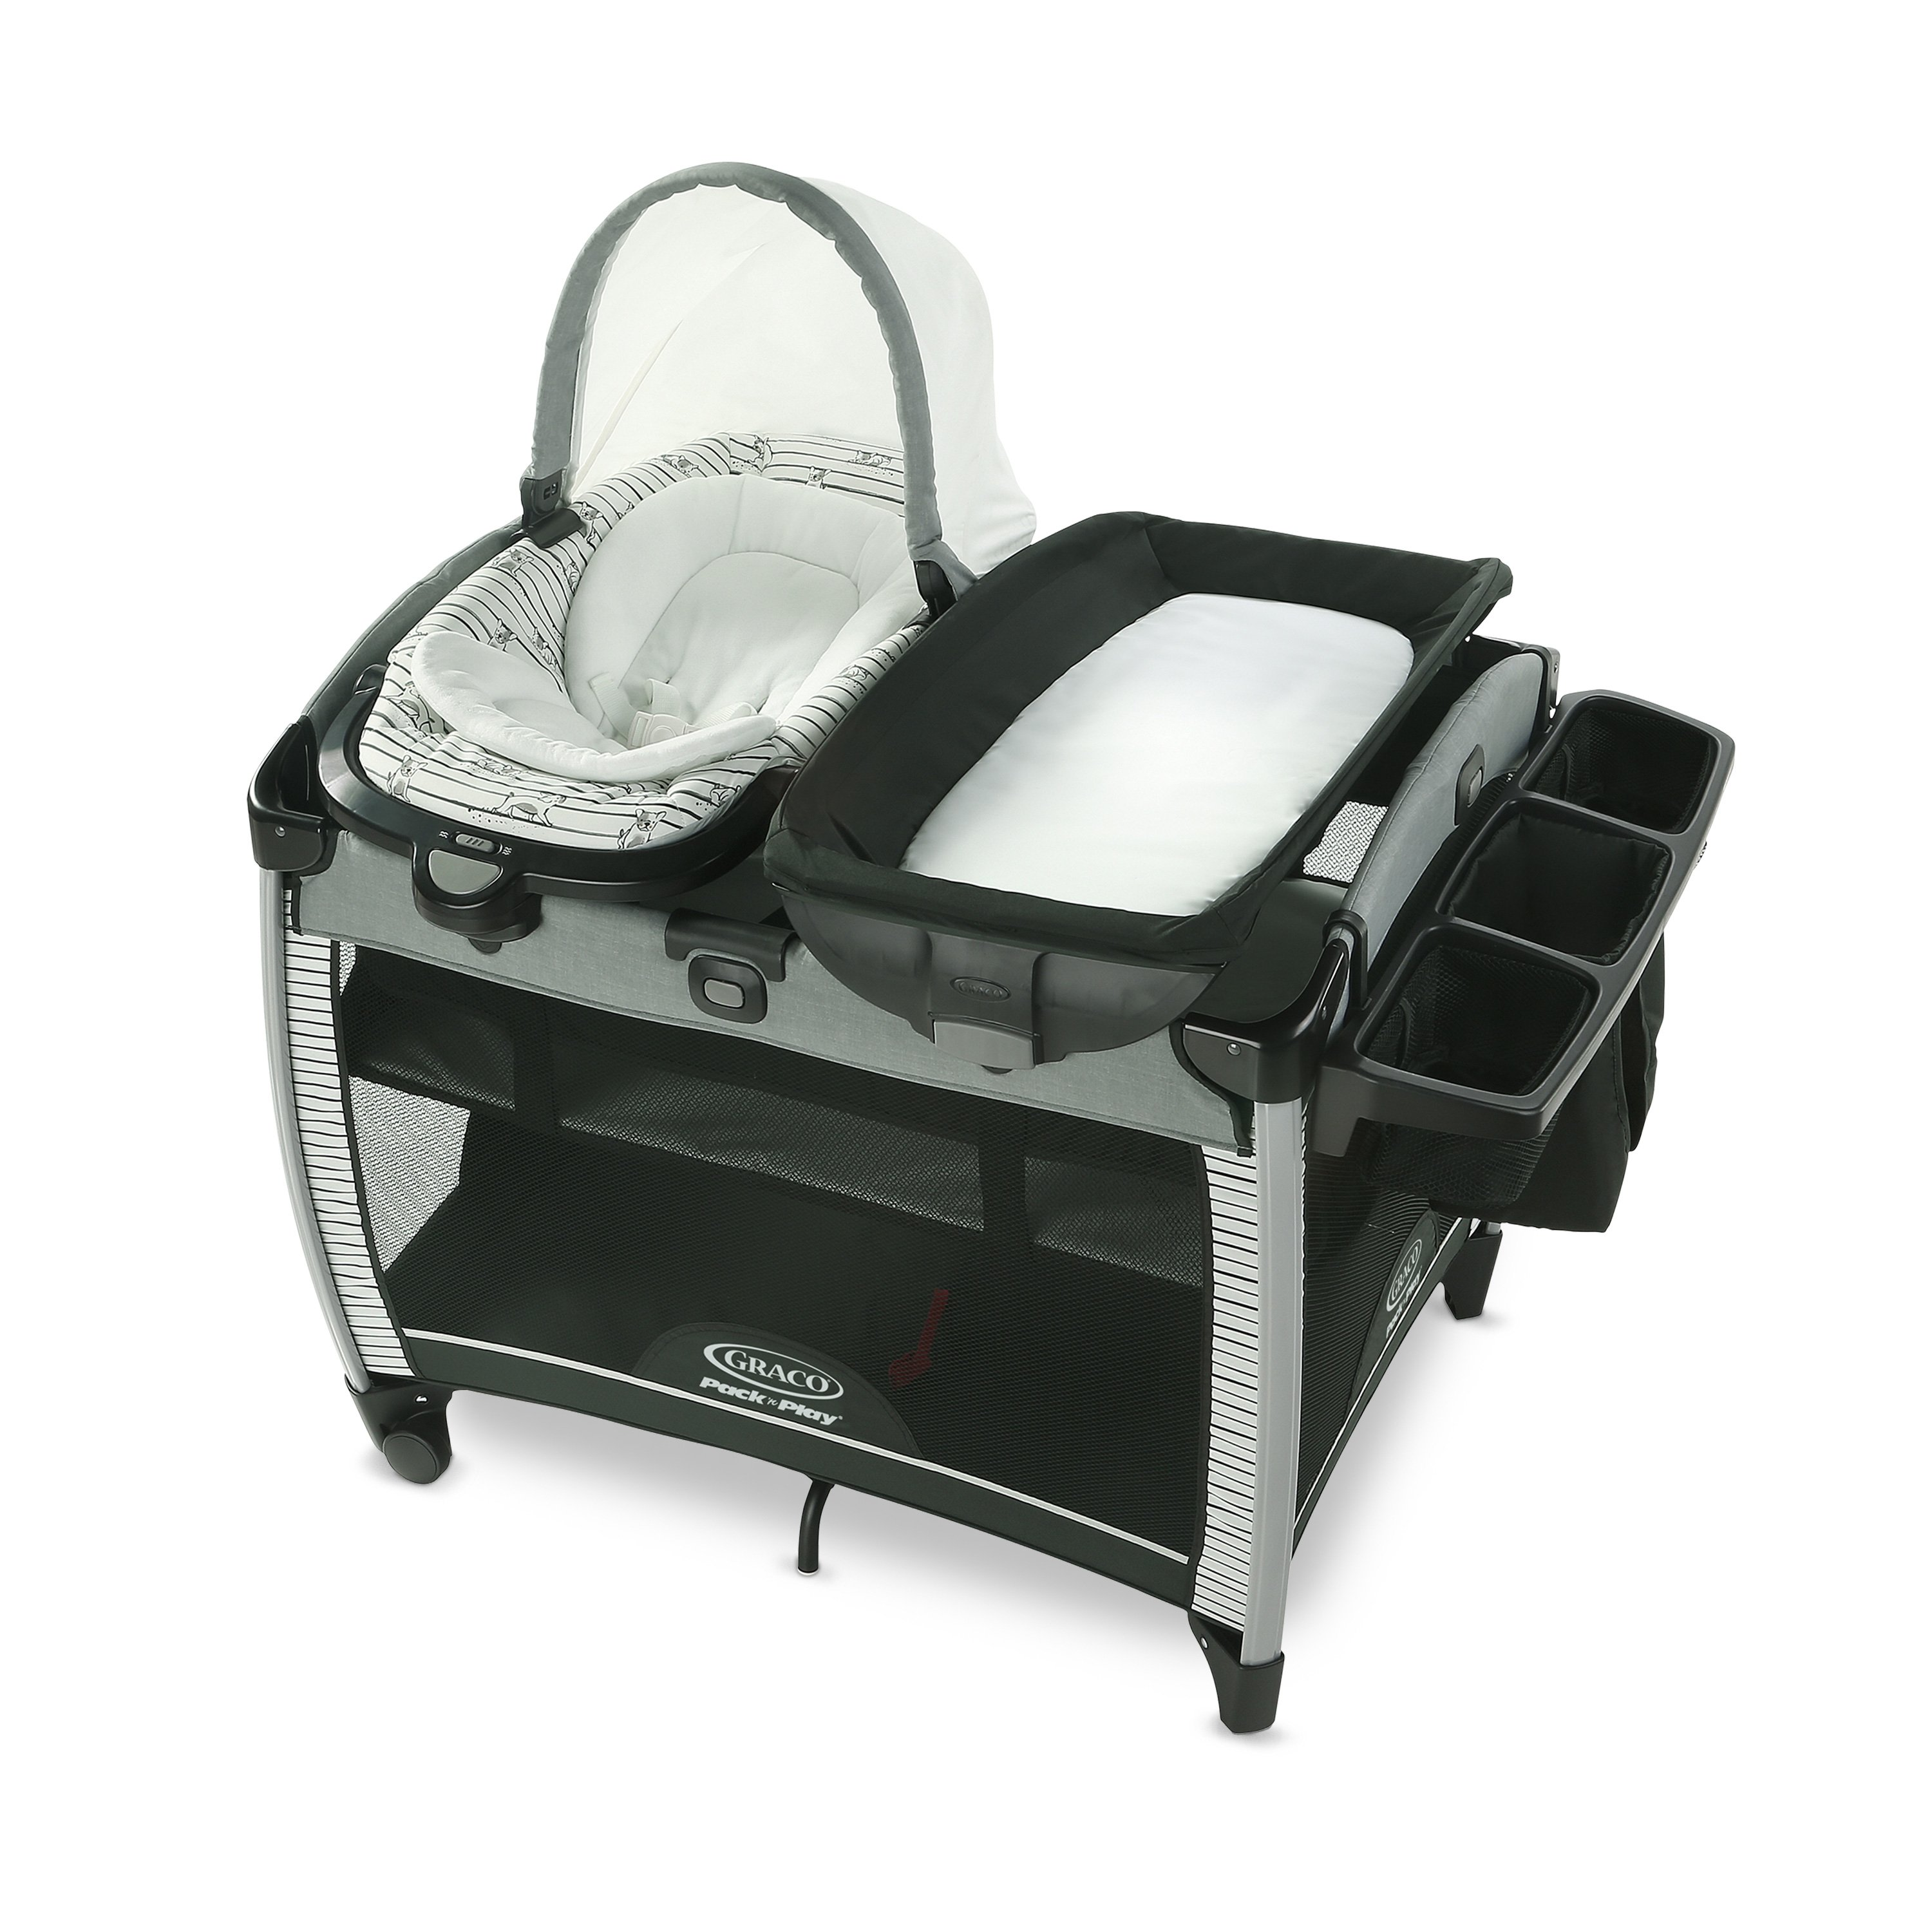 Graco Rock 'n Grow Playard